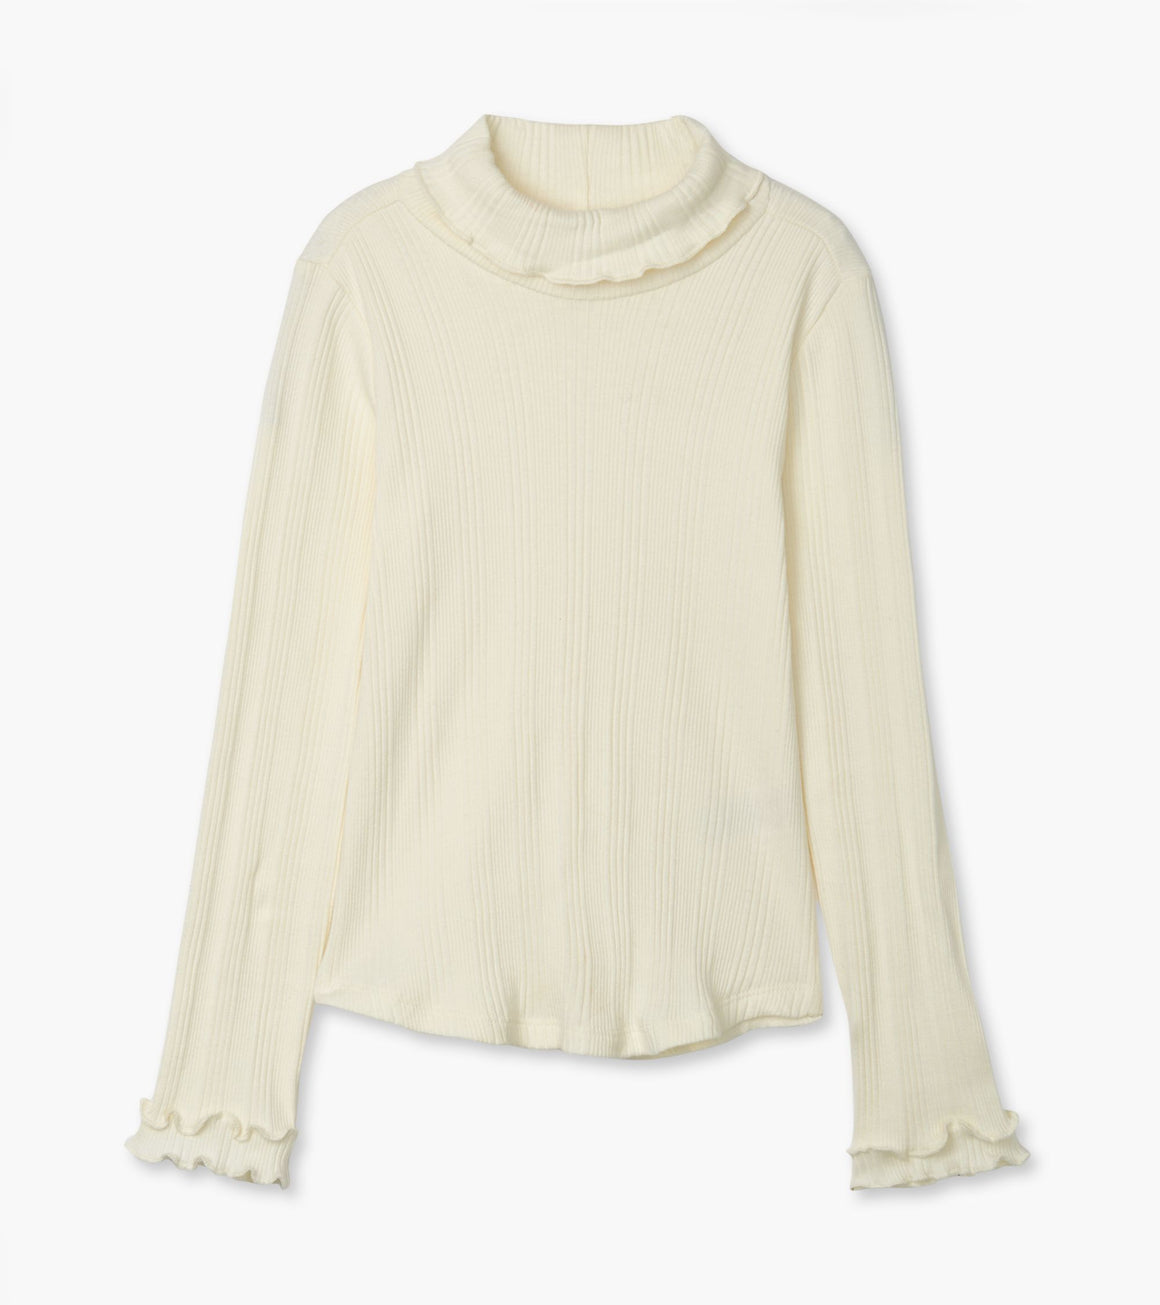 Hatley | Winter Cream Turtleneck